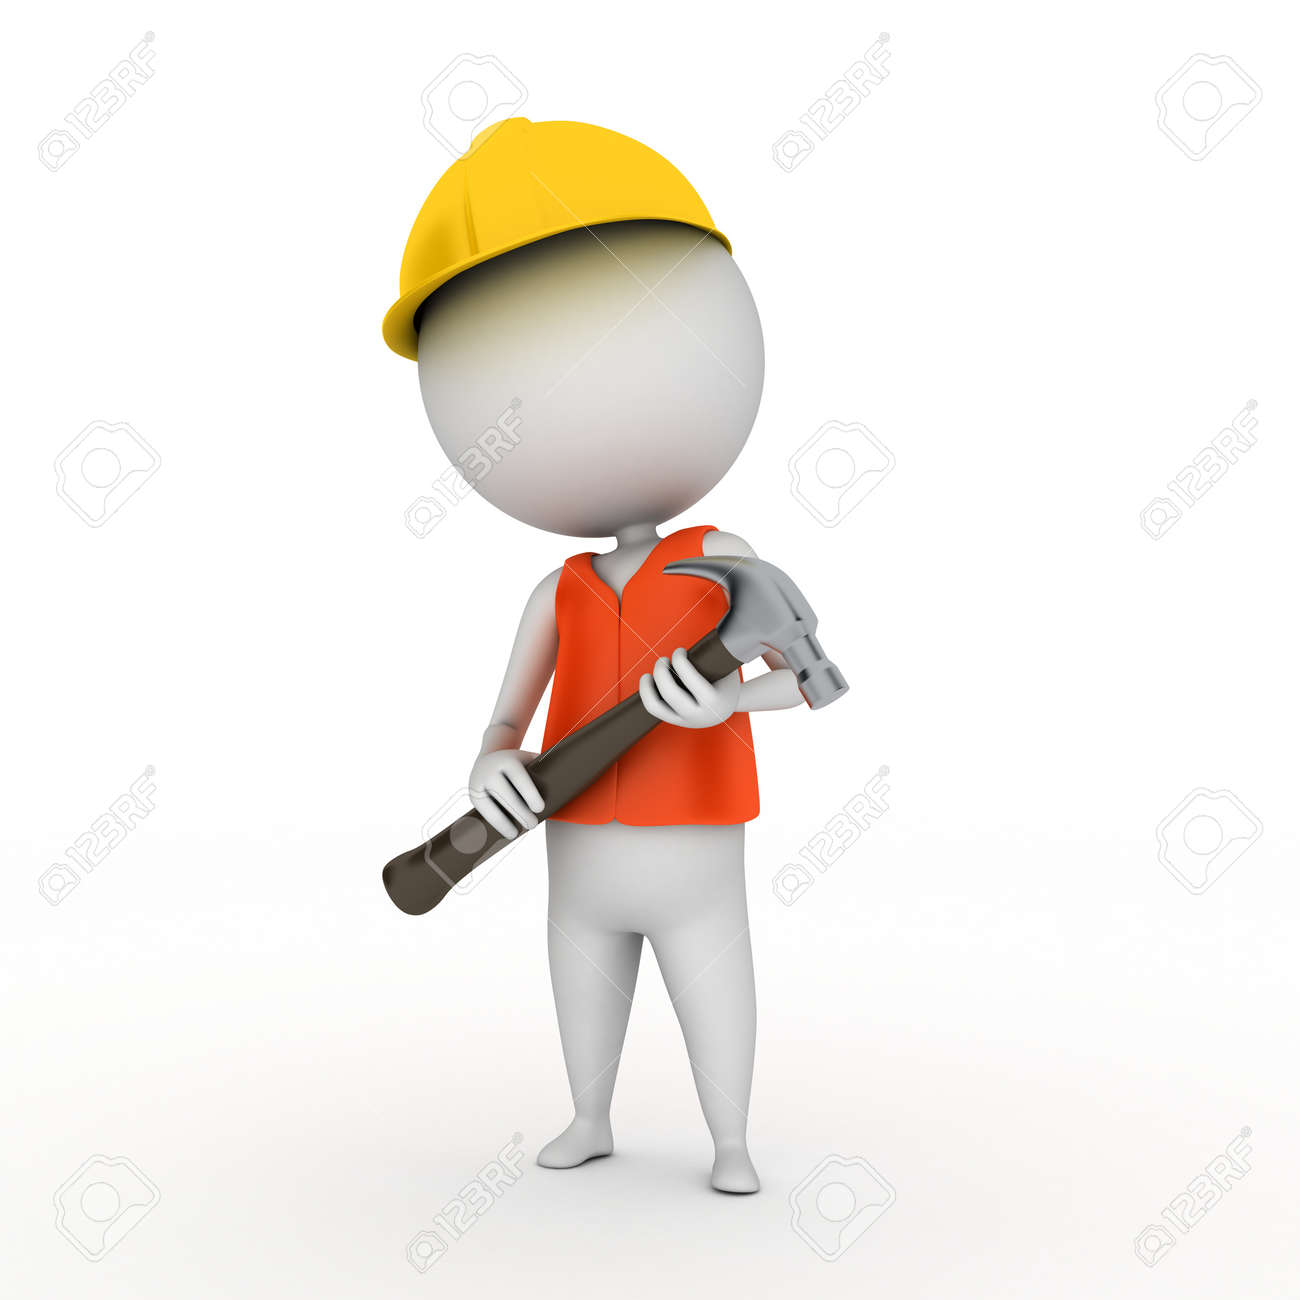 3d rendered illustration of a little worker guy Stock Photo - 11023375